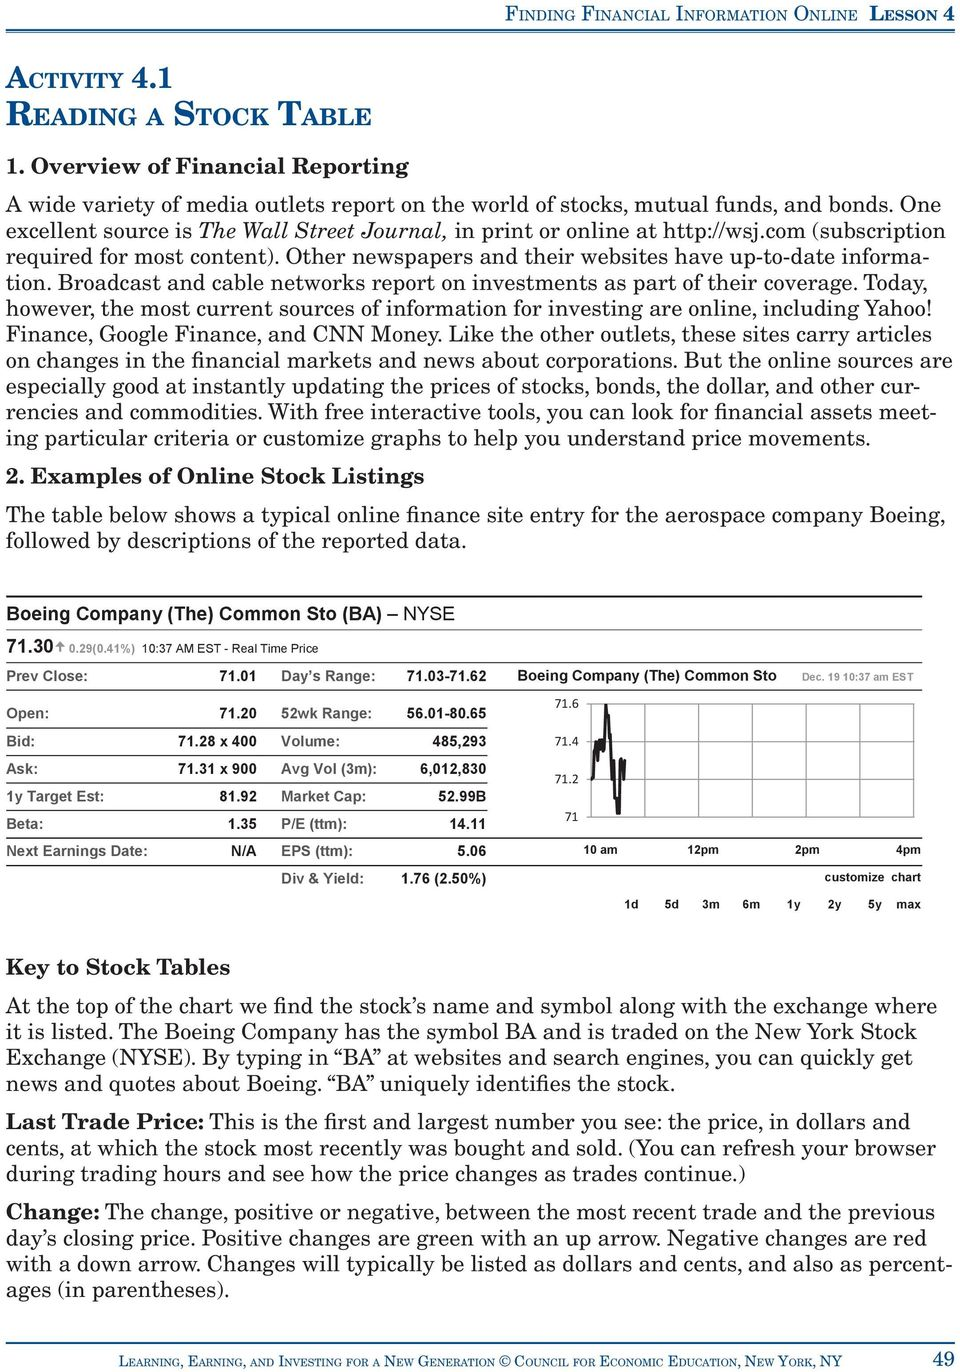 Activity 4 1 Reading A Stock Table Pdf Free Download [ 1372 x 960 Pixel ]